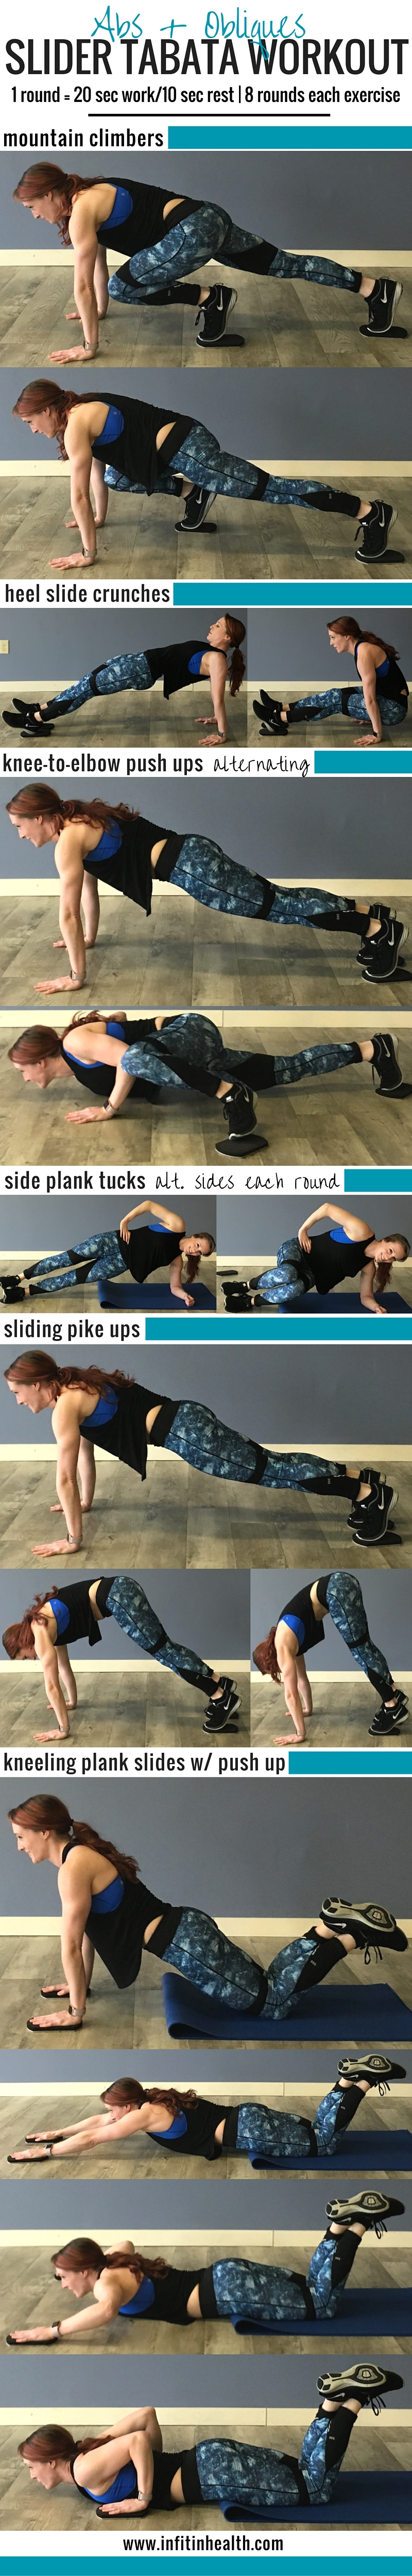 Abs & Obliques Slider Tabata Workout